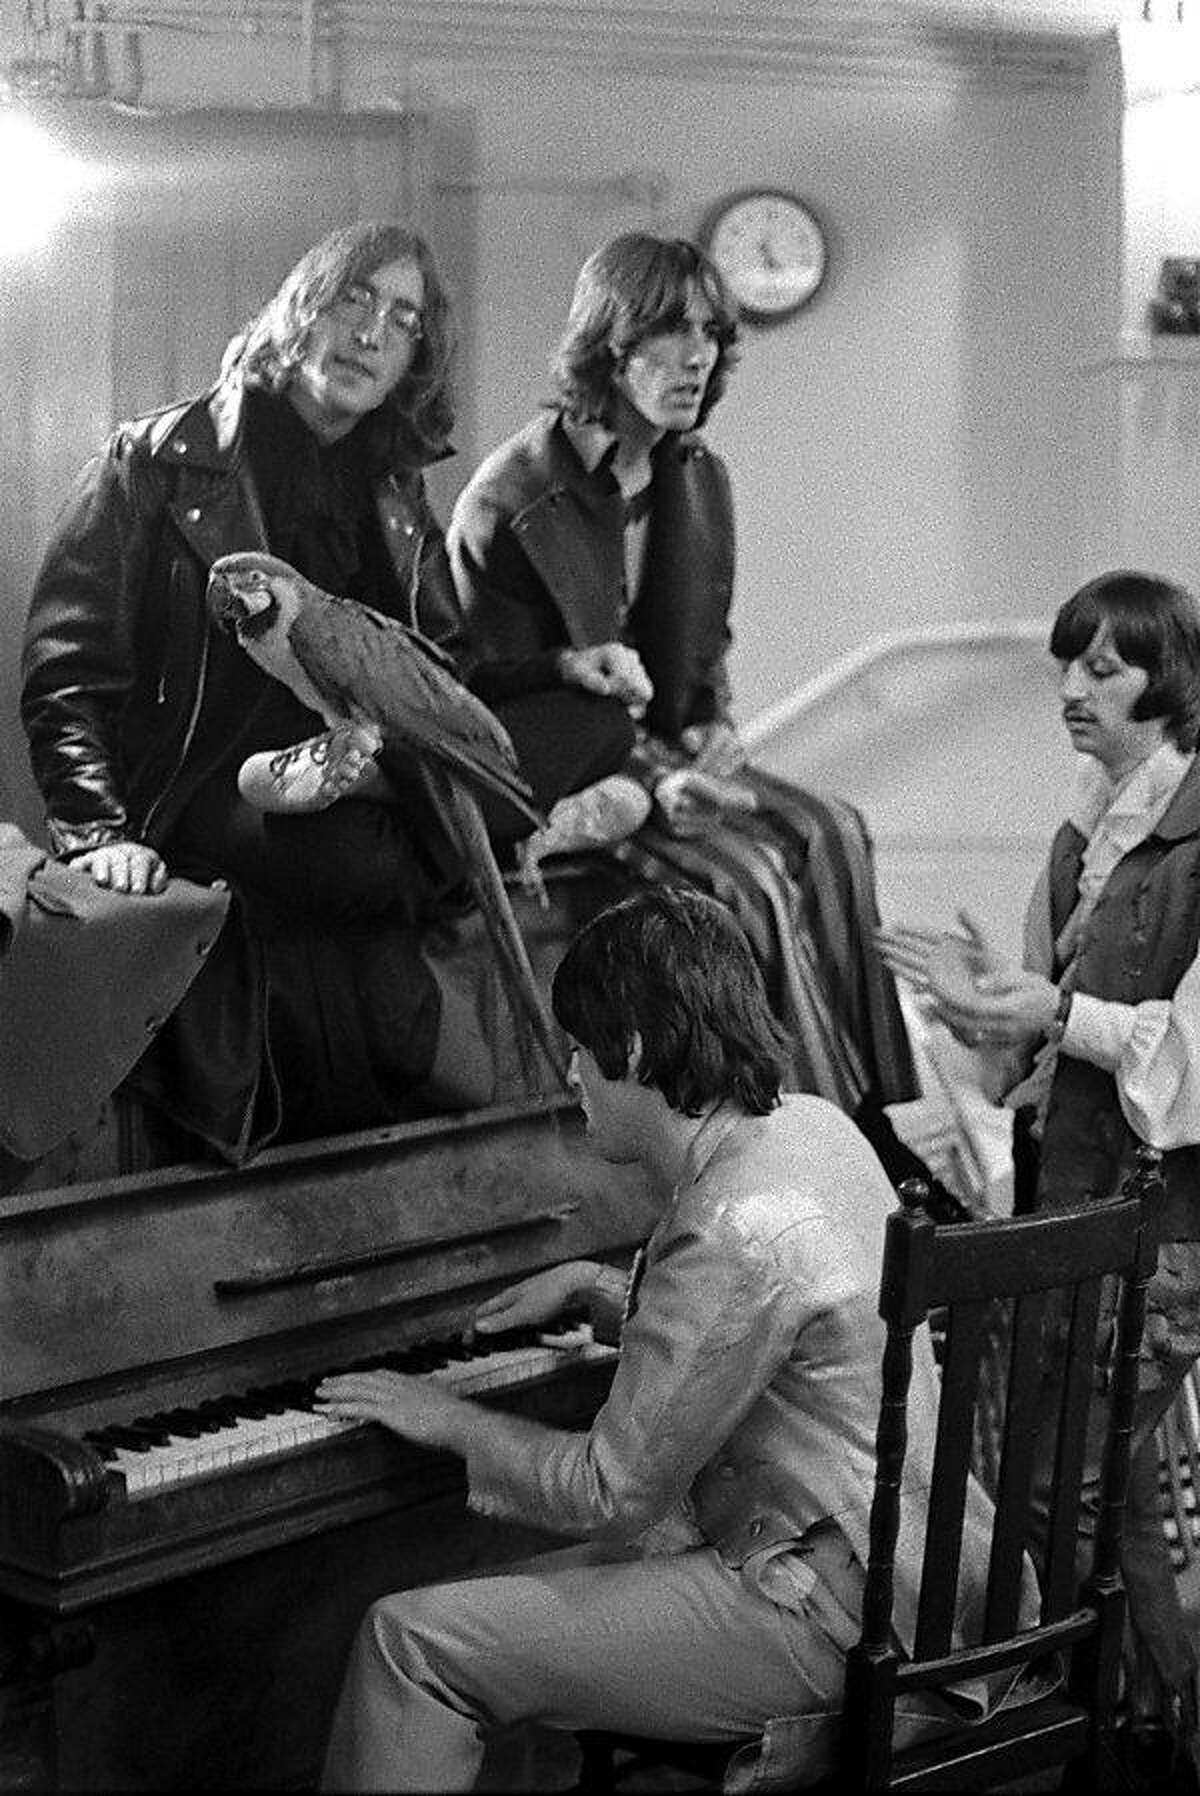 """Goldblatt: """"They had recently recorded �Hey Jude� and so Paul is playing �Hey Jude,� and they�re all singing, and the parrot is just a prop that Paul�s girlfriend brought along. She was the prop girl. It was taken in the Mercury Theatre in Notting Hill."""" Rare Beatles photos at the gallery of the UC Berkeley Graduate School of Business."""